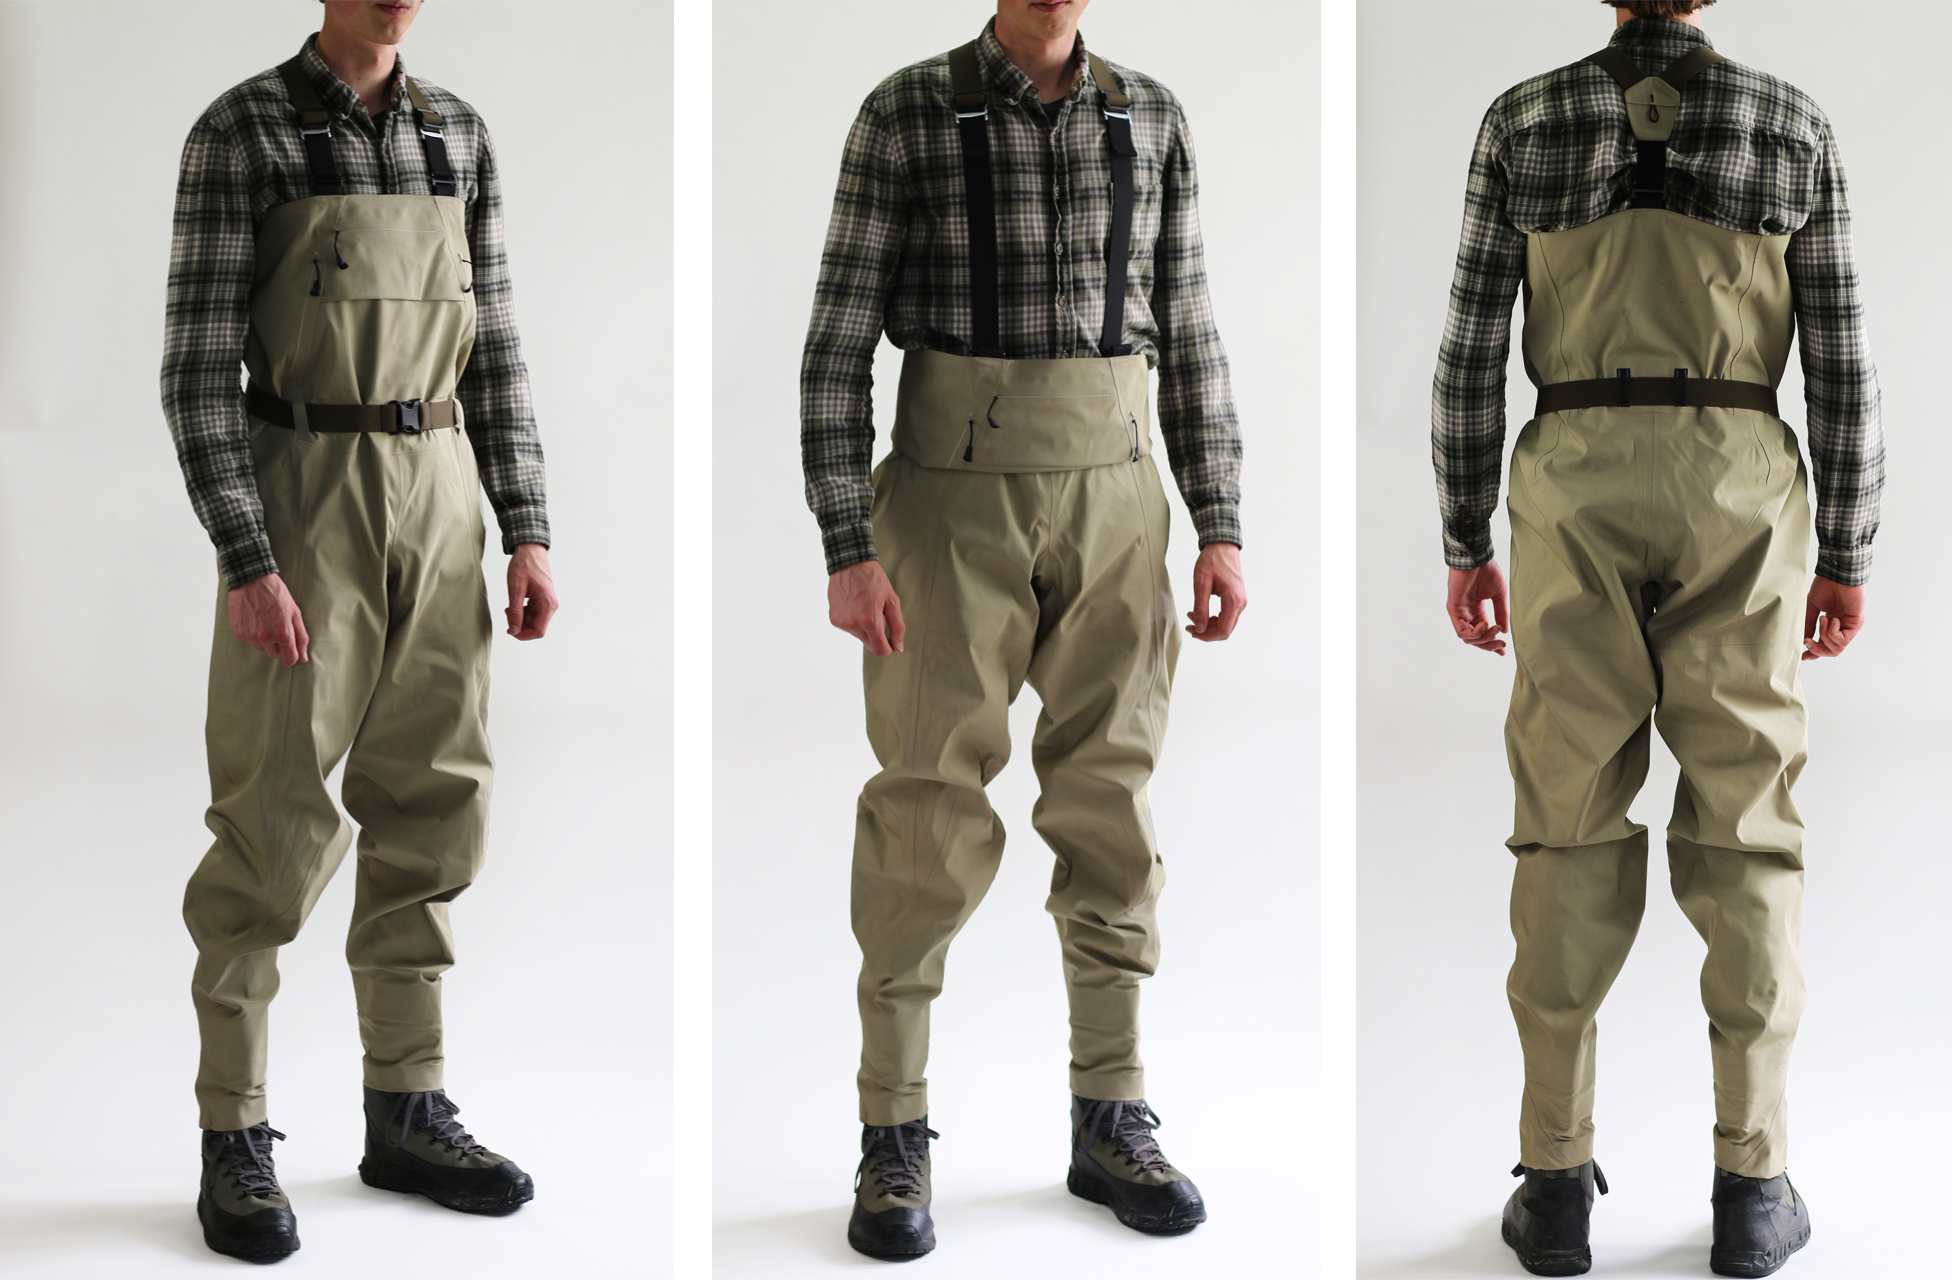 Finished Waders - 3 views